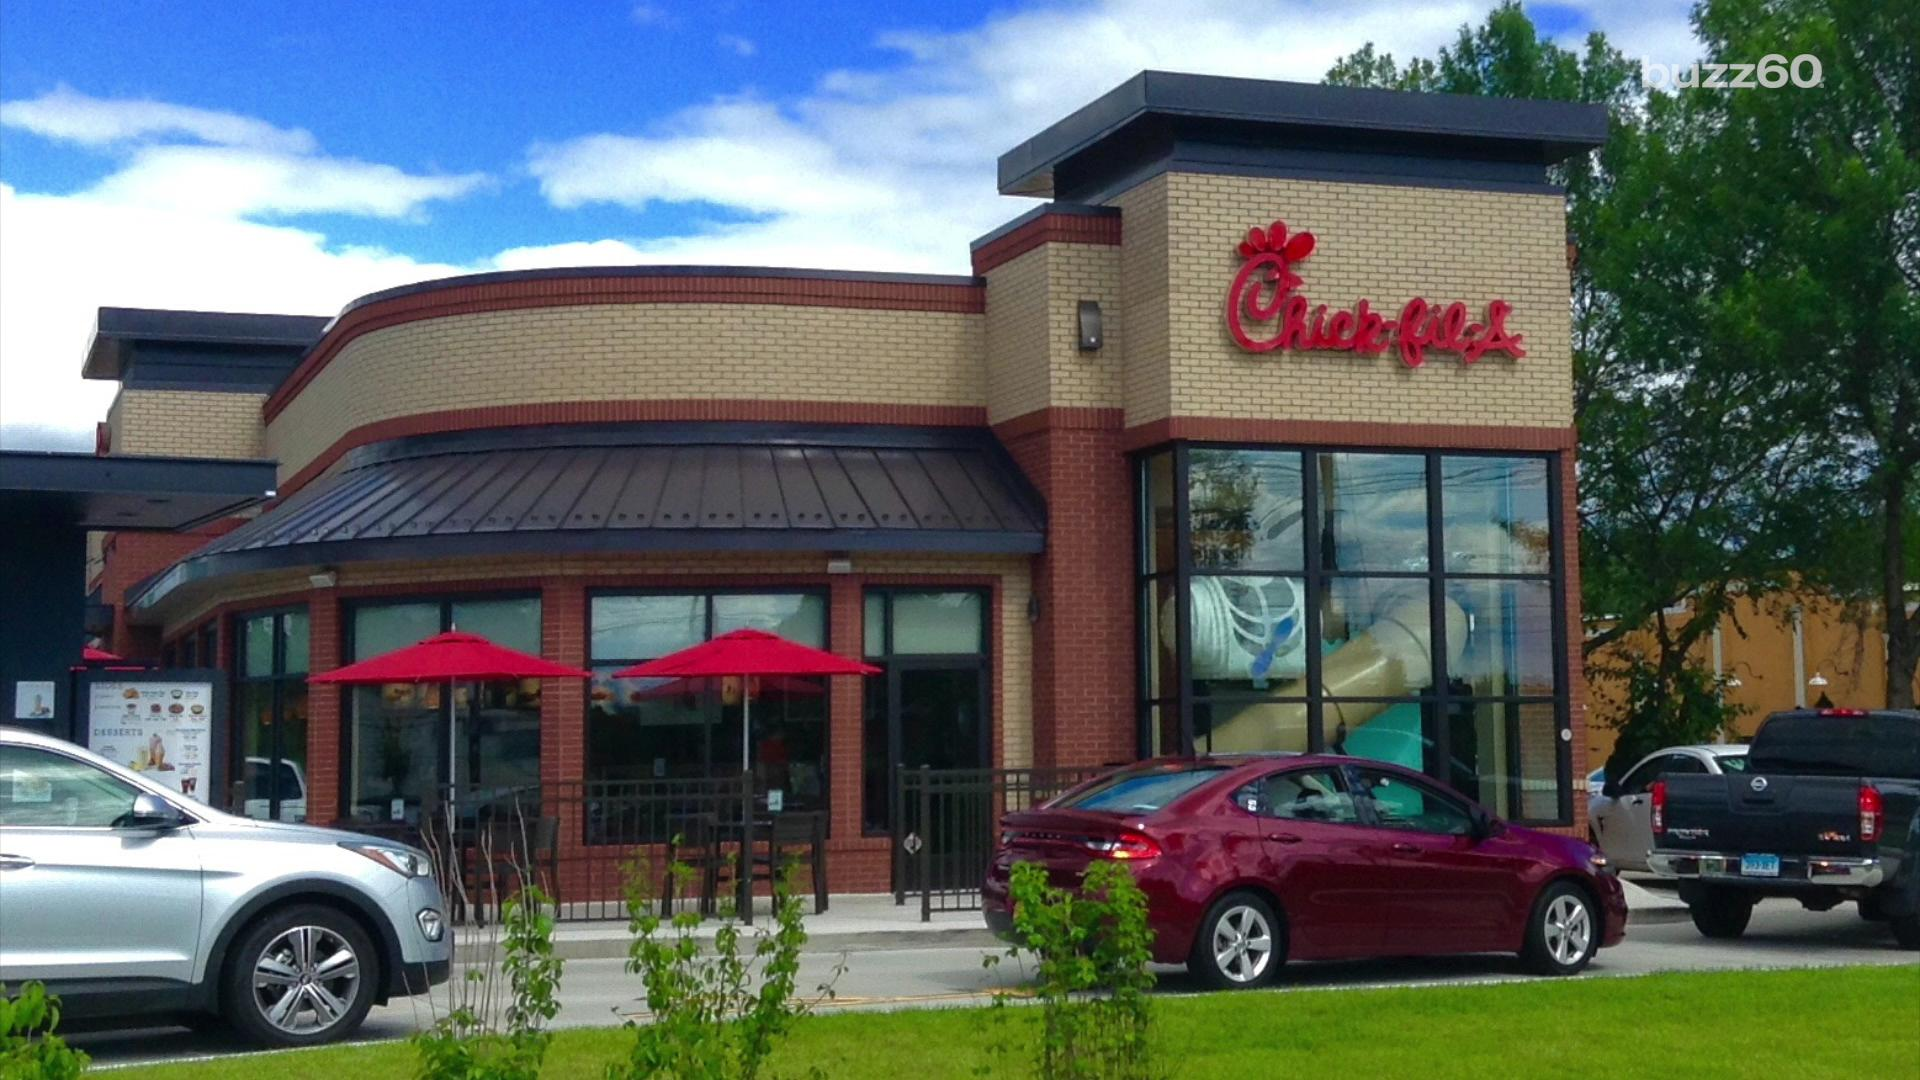 Chick-Fil-A Is Giving Away Free Ice Cream If You Can Put Down Your Phone